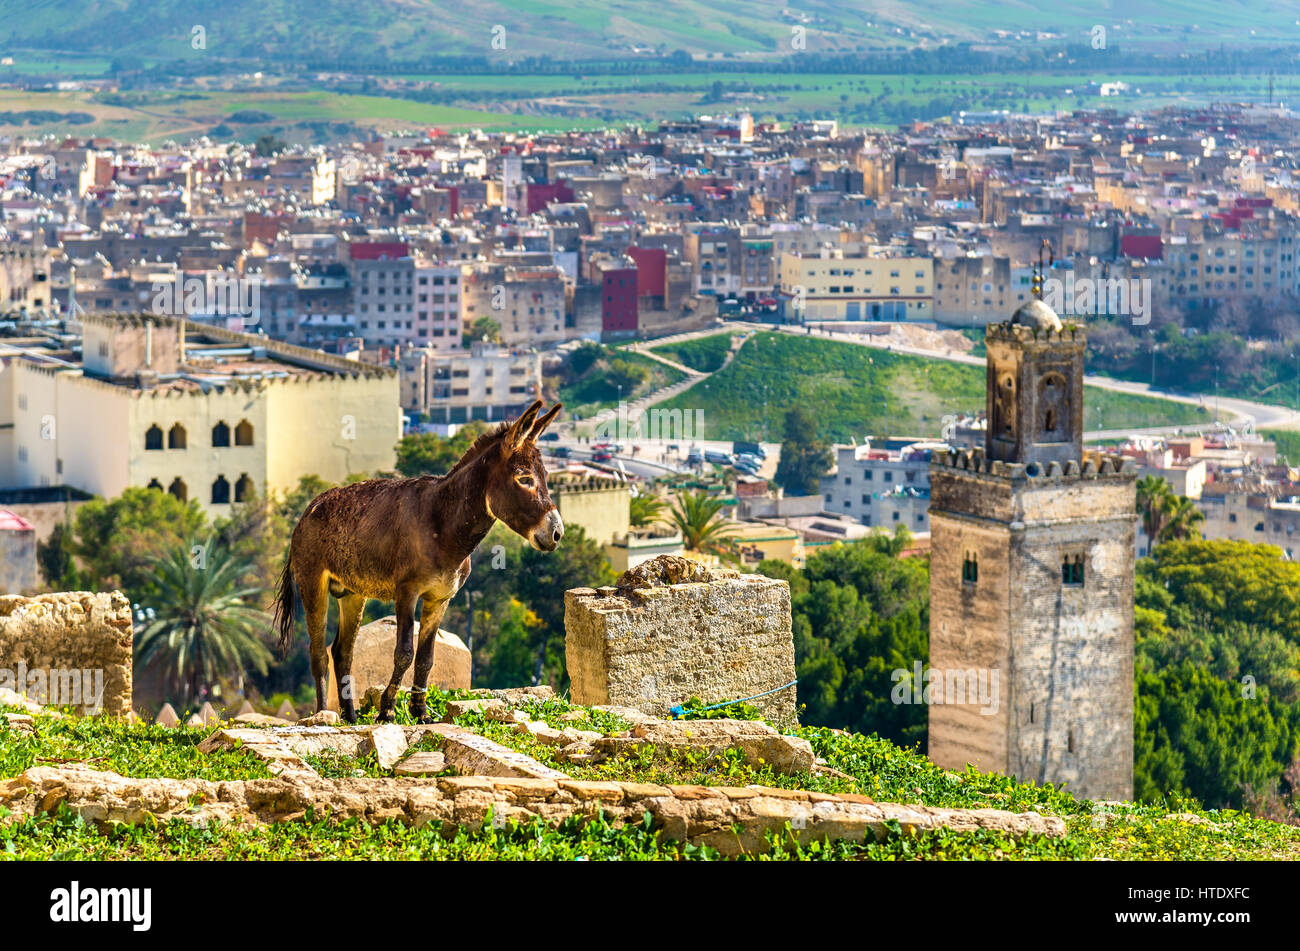 Donkey at the city walls of Fes - Morocco Stock Photo